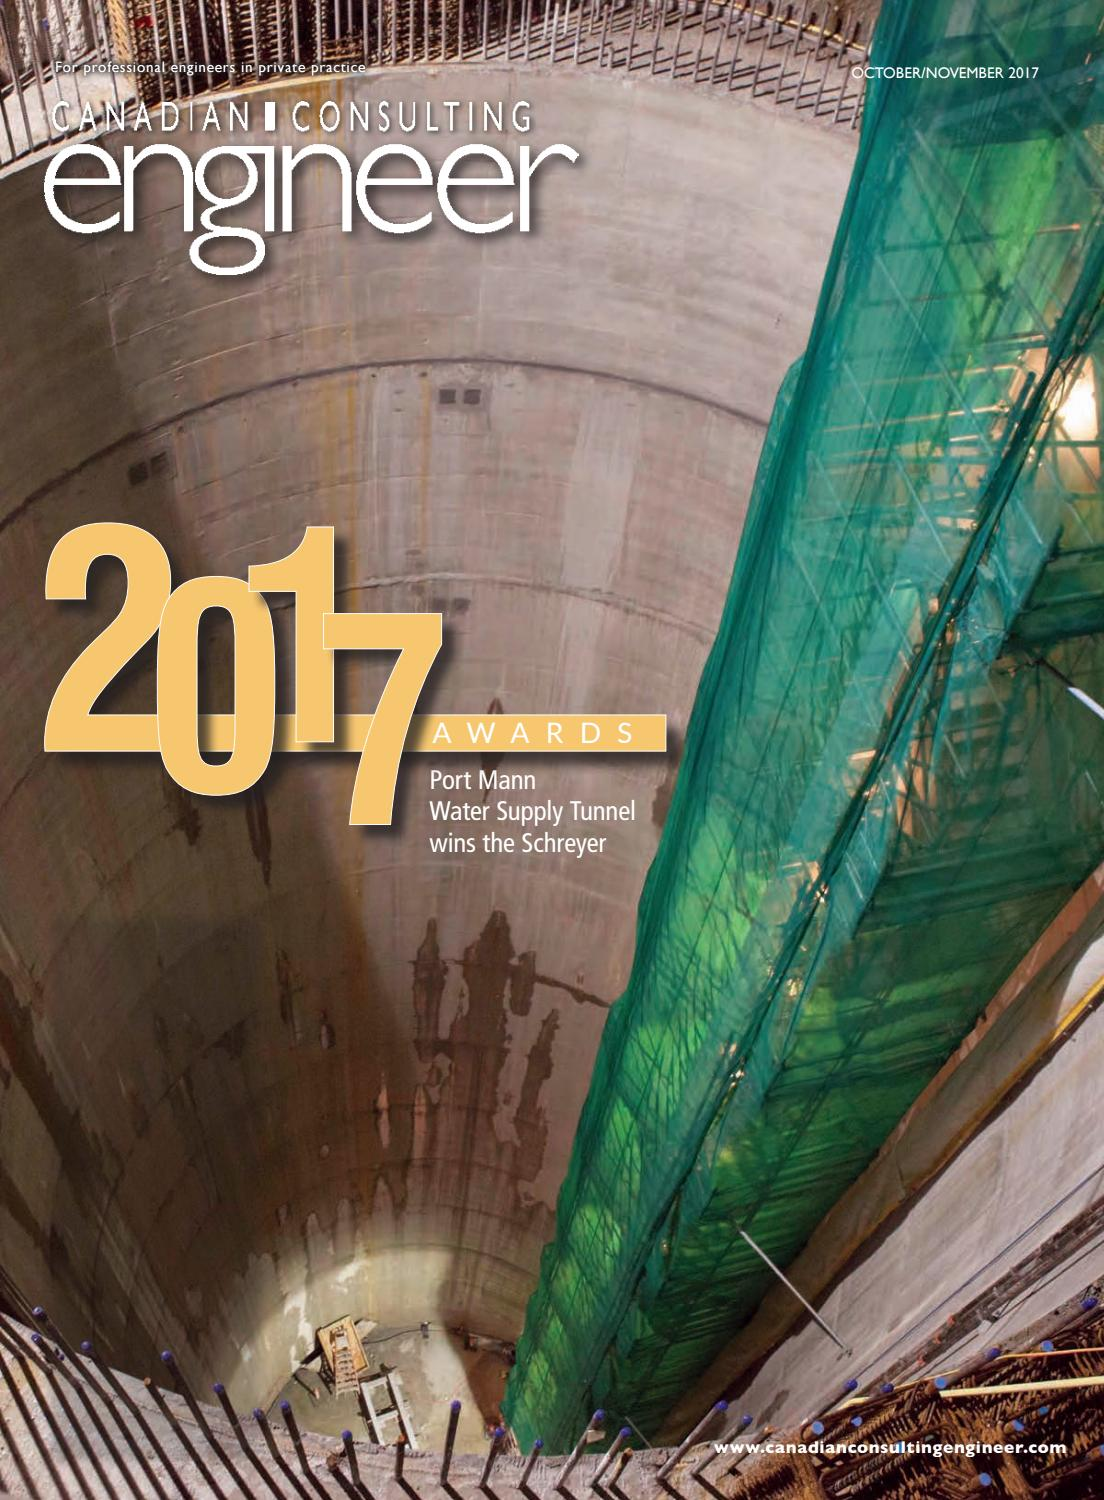 Canadian consulting engineer octobernovember 2017 by annex newcom canadian consulting engineer octobernovember 2017 by annex newcom lp issuu fandeluxe Gallery